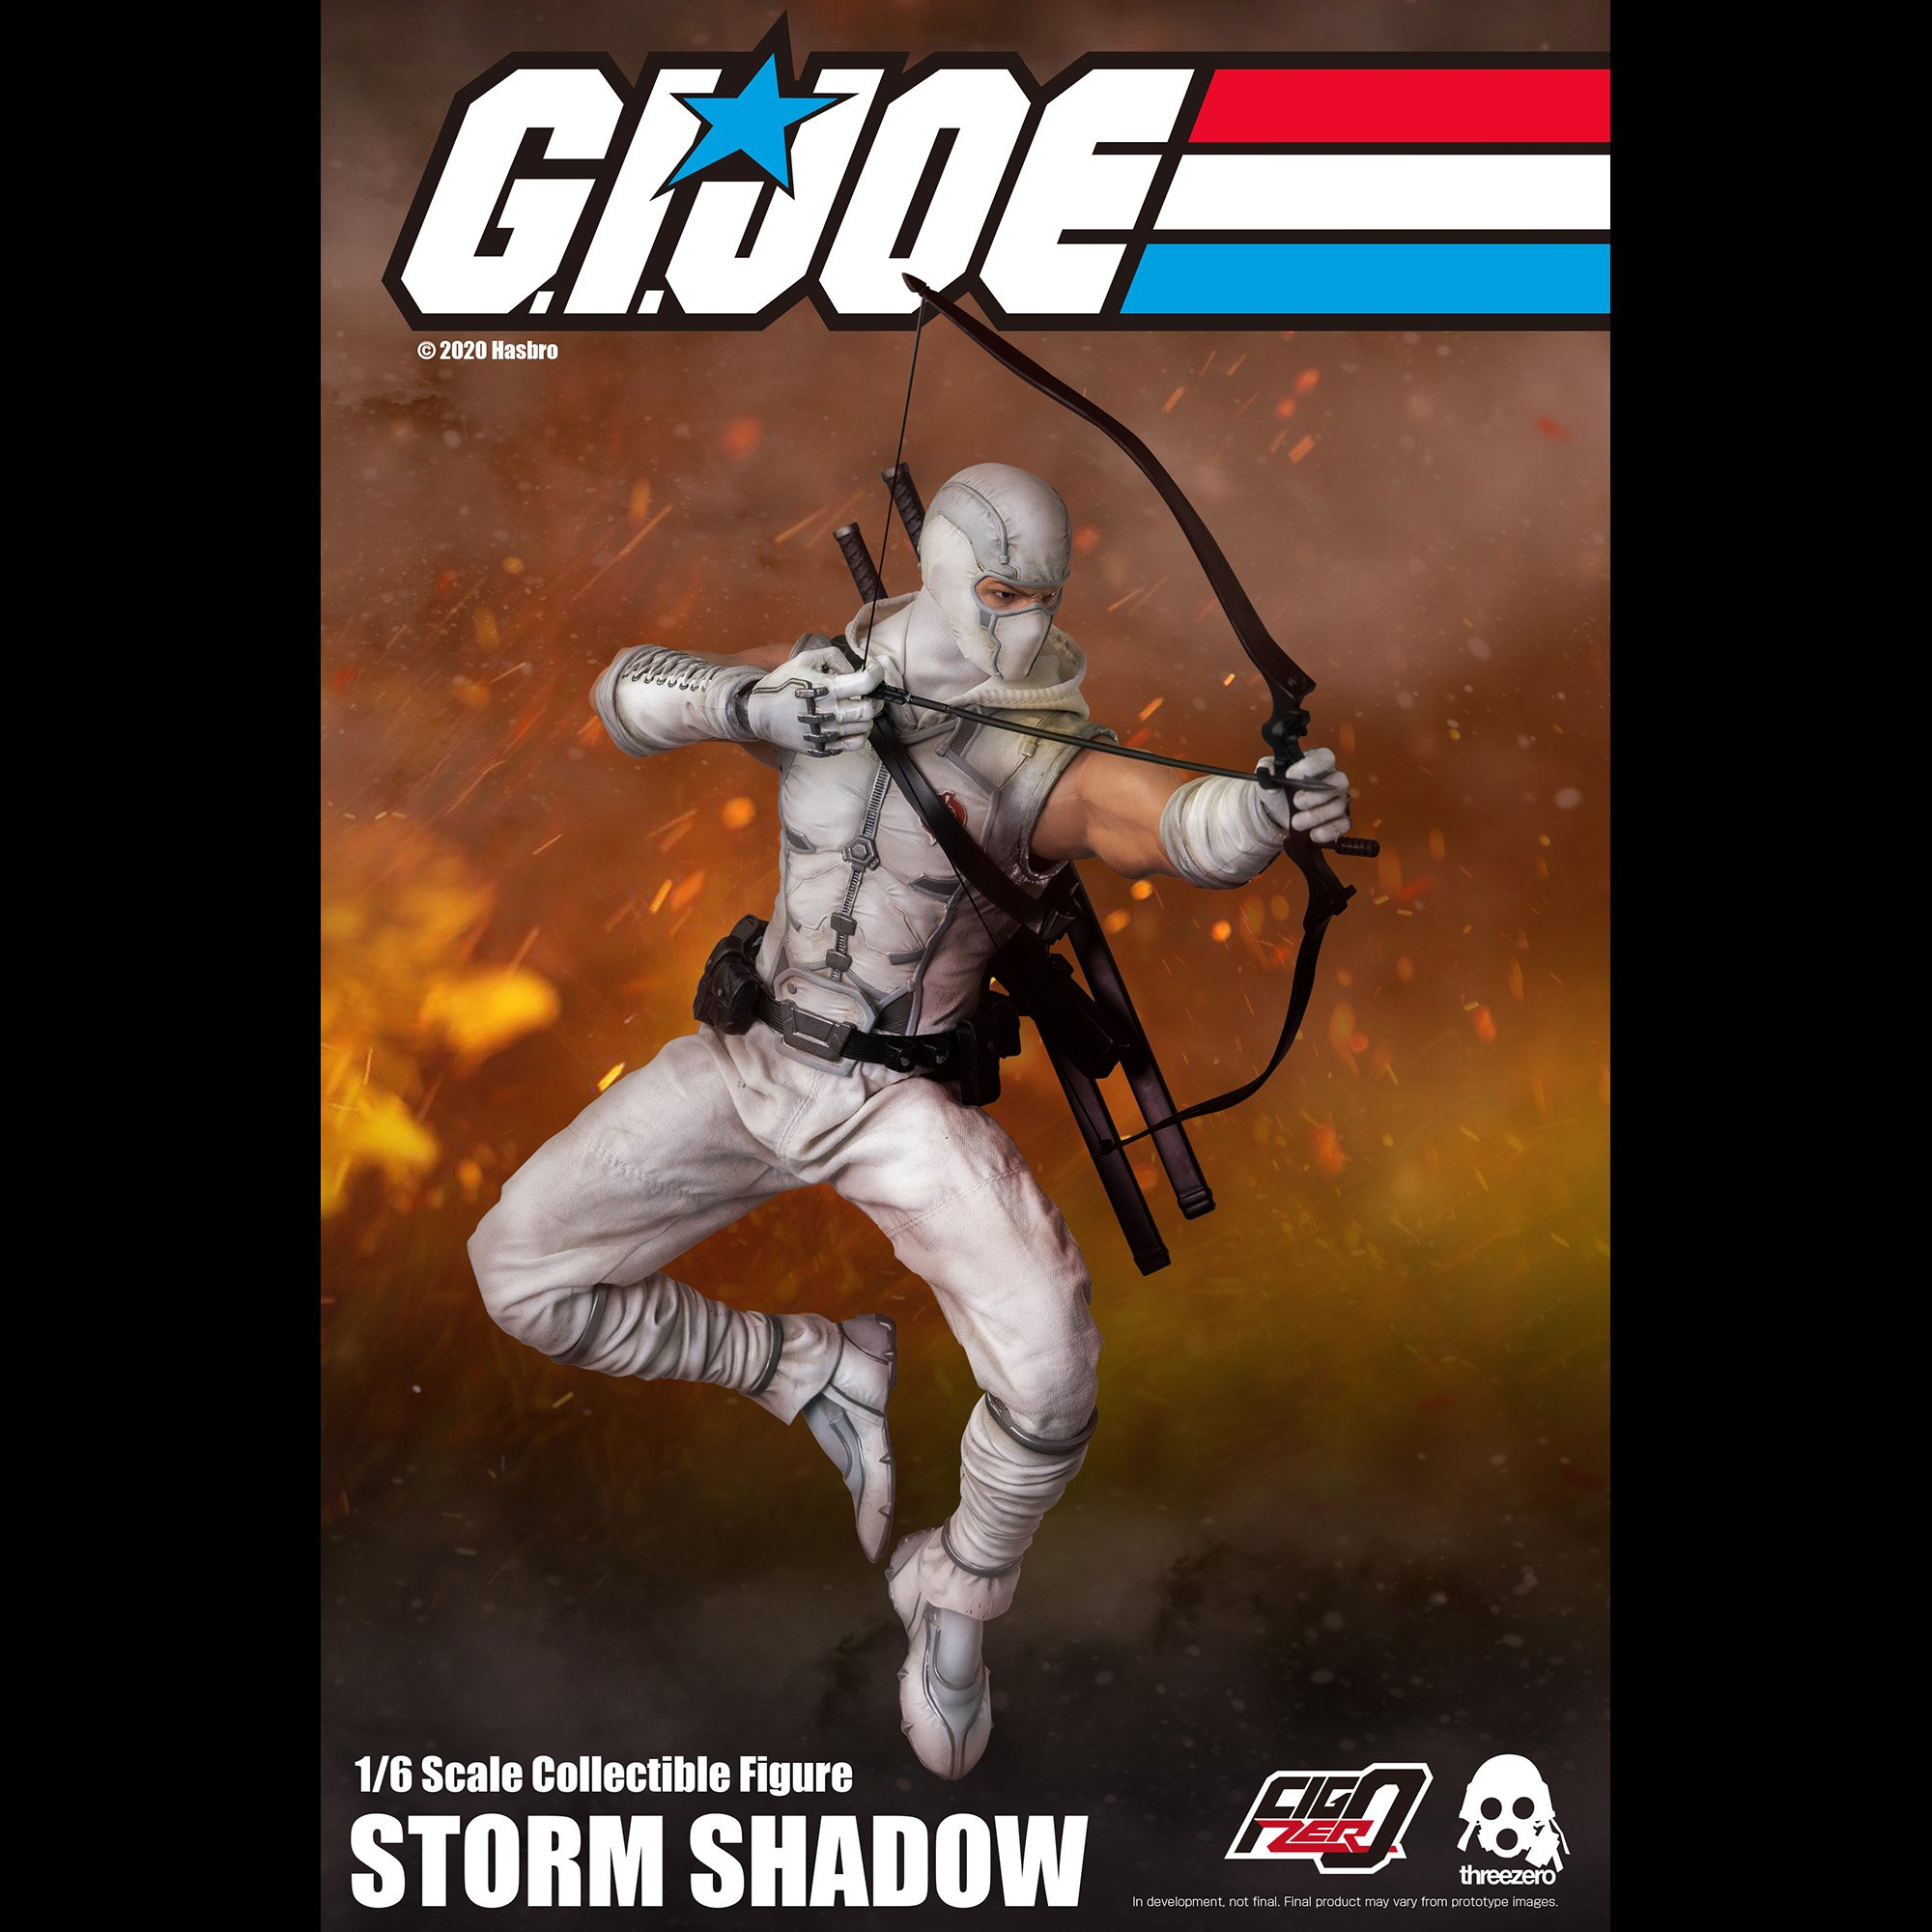 Storm Shadow archery